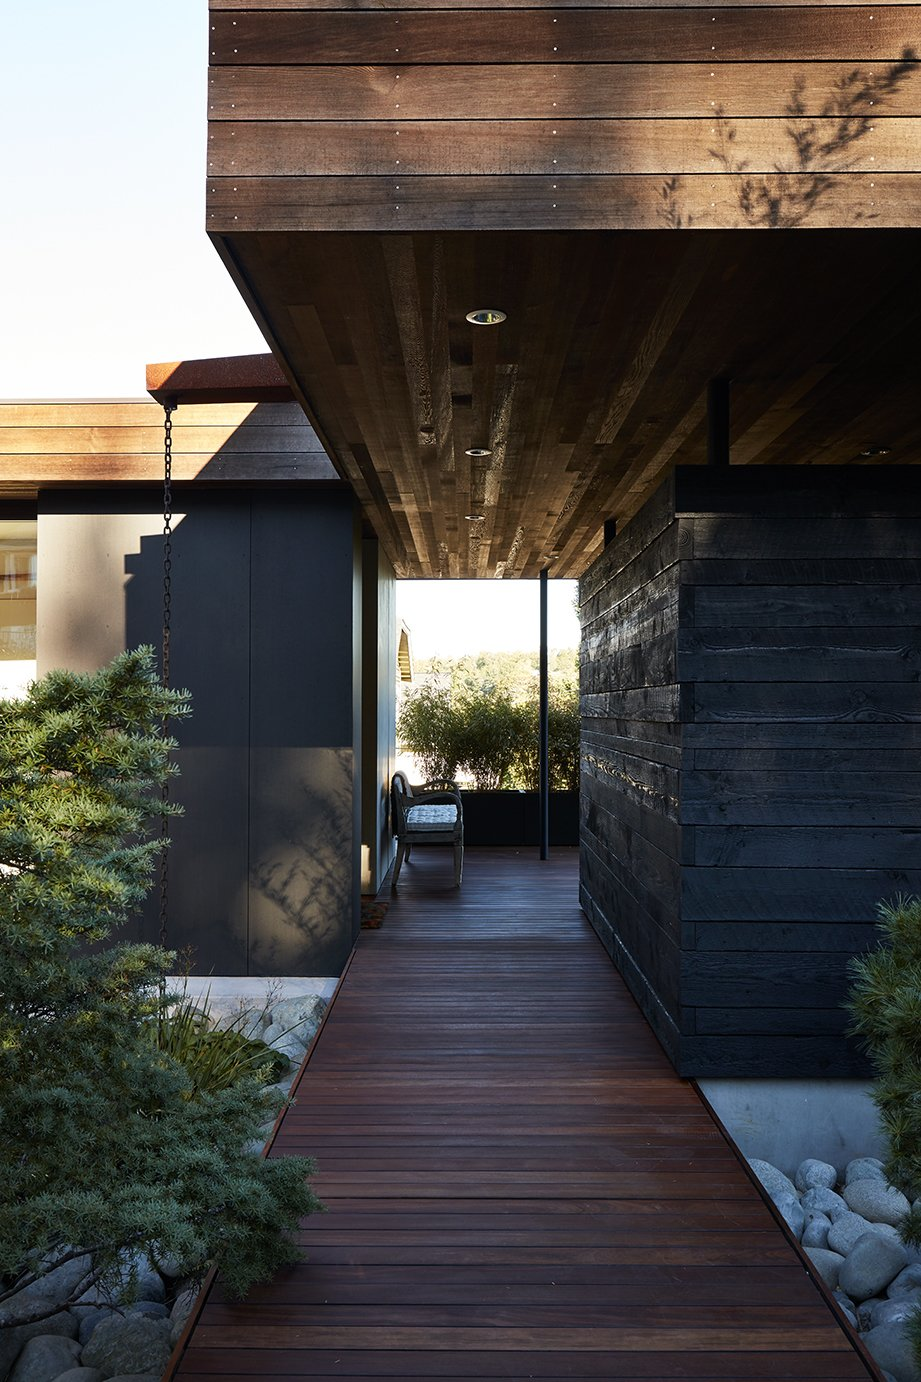 """Generous breezeways, walkways, and overhangs frame views beyond: """"It's like a promenade, with a forest at the end of the road,"""" says Deb. Tagged: Outdoor, Wood Patio, Porch, Deck, Small Patio, Porch, Deck, and Walkways.  Photo 9 of 15 in Greener Grass"""